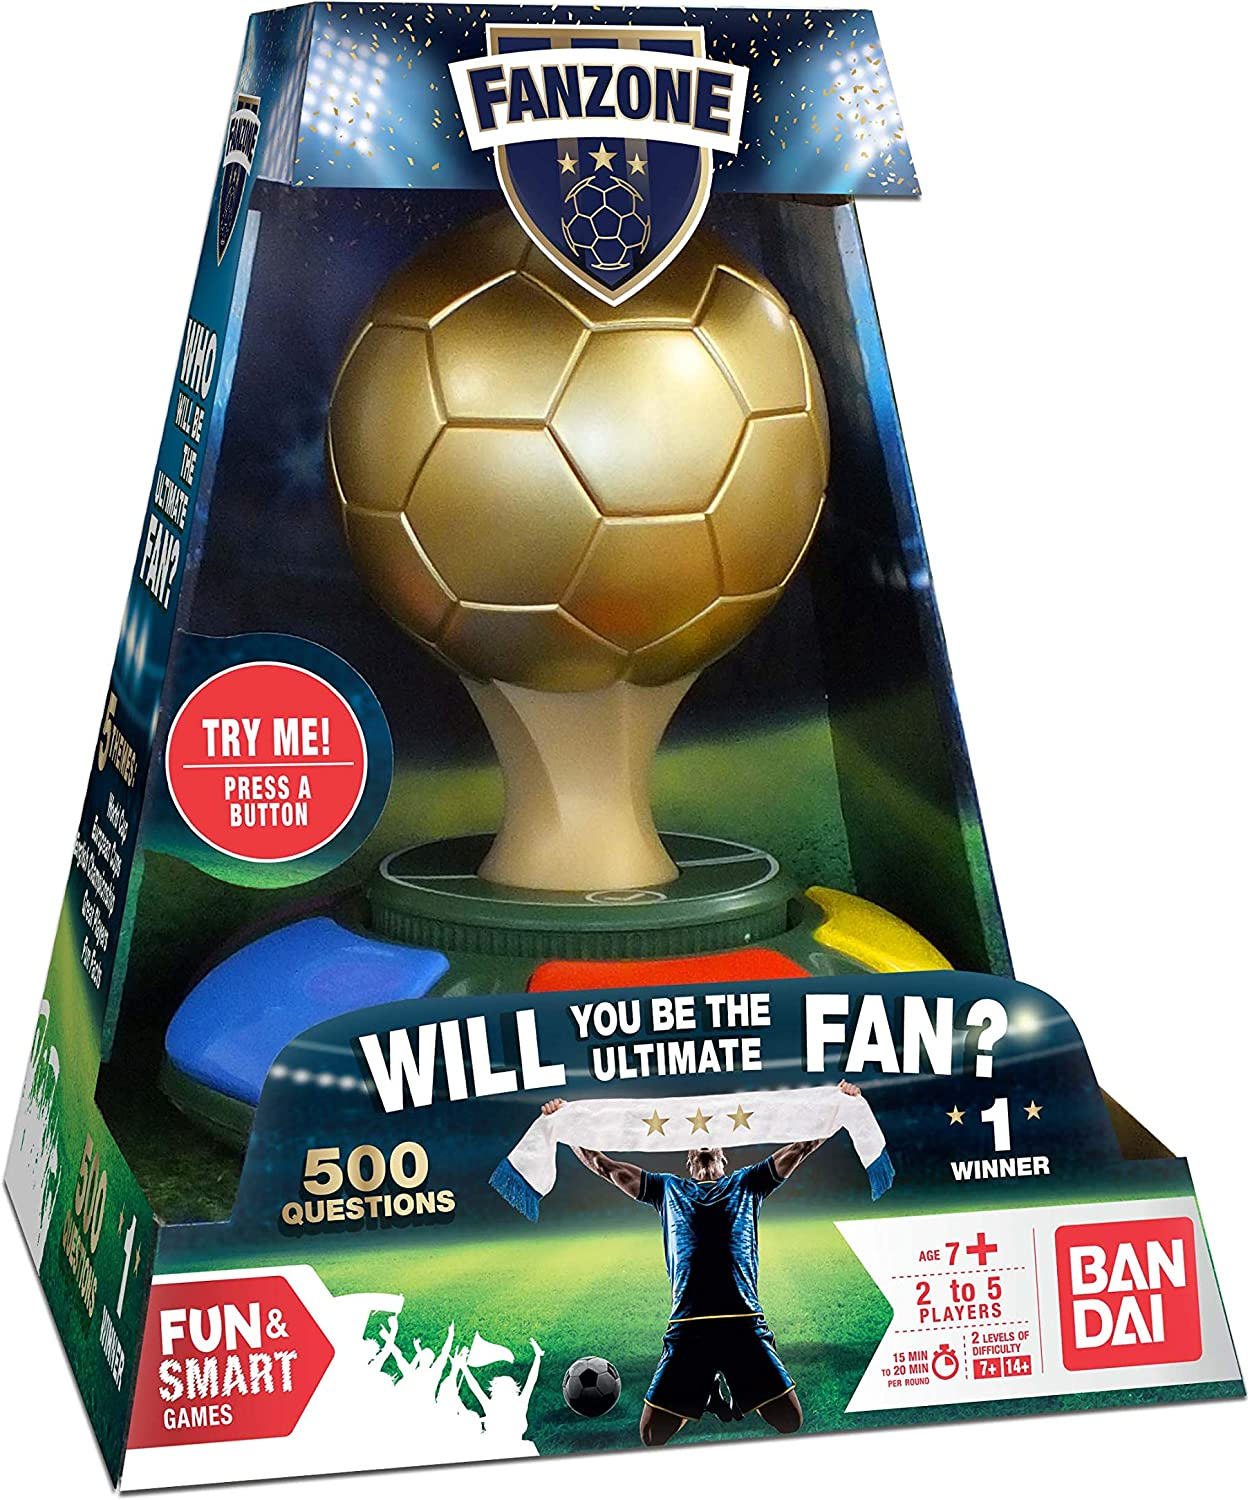 Fanzone Football Trivia Juego, color (Zanzoon ZZ85708) , color/modelo surtido: Amazon.es: Juguetes y juegos